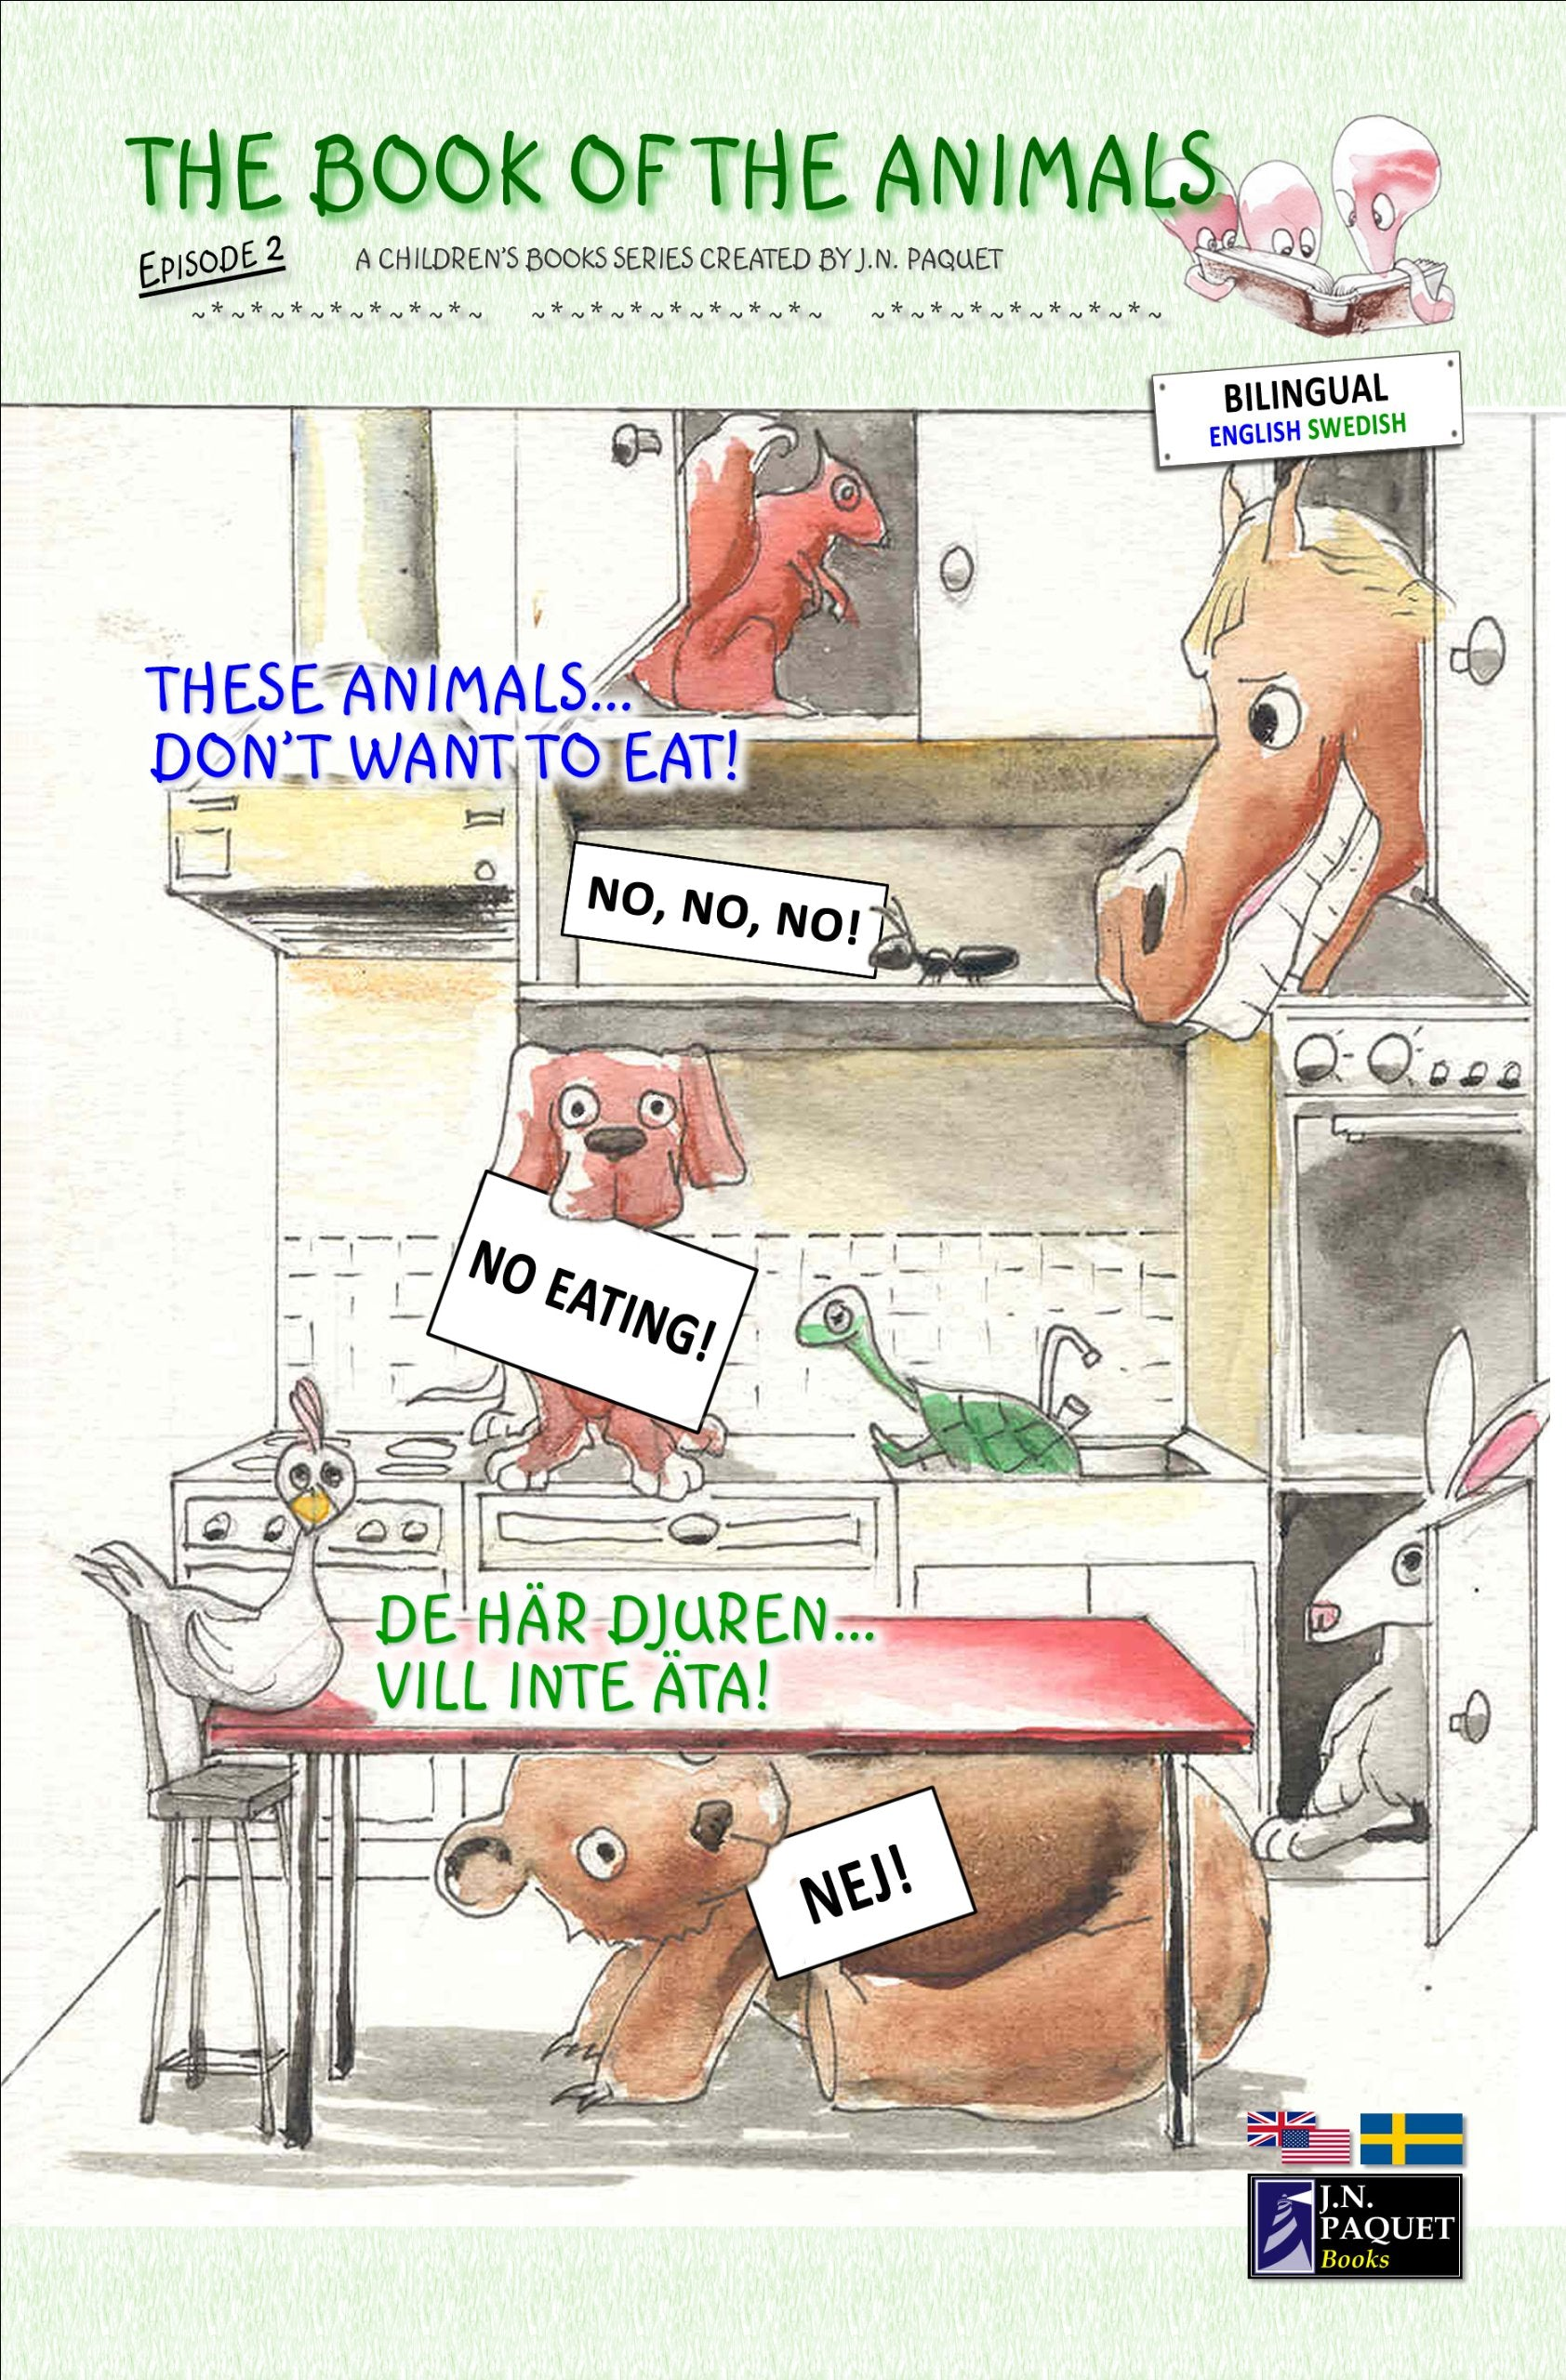 The Book of The Animals - Episode 2 (Bilingual English-Swedish)